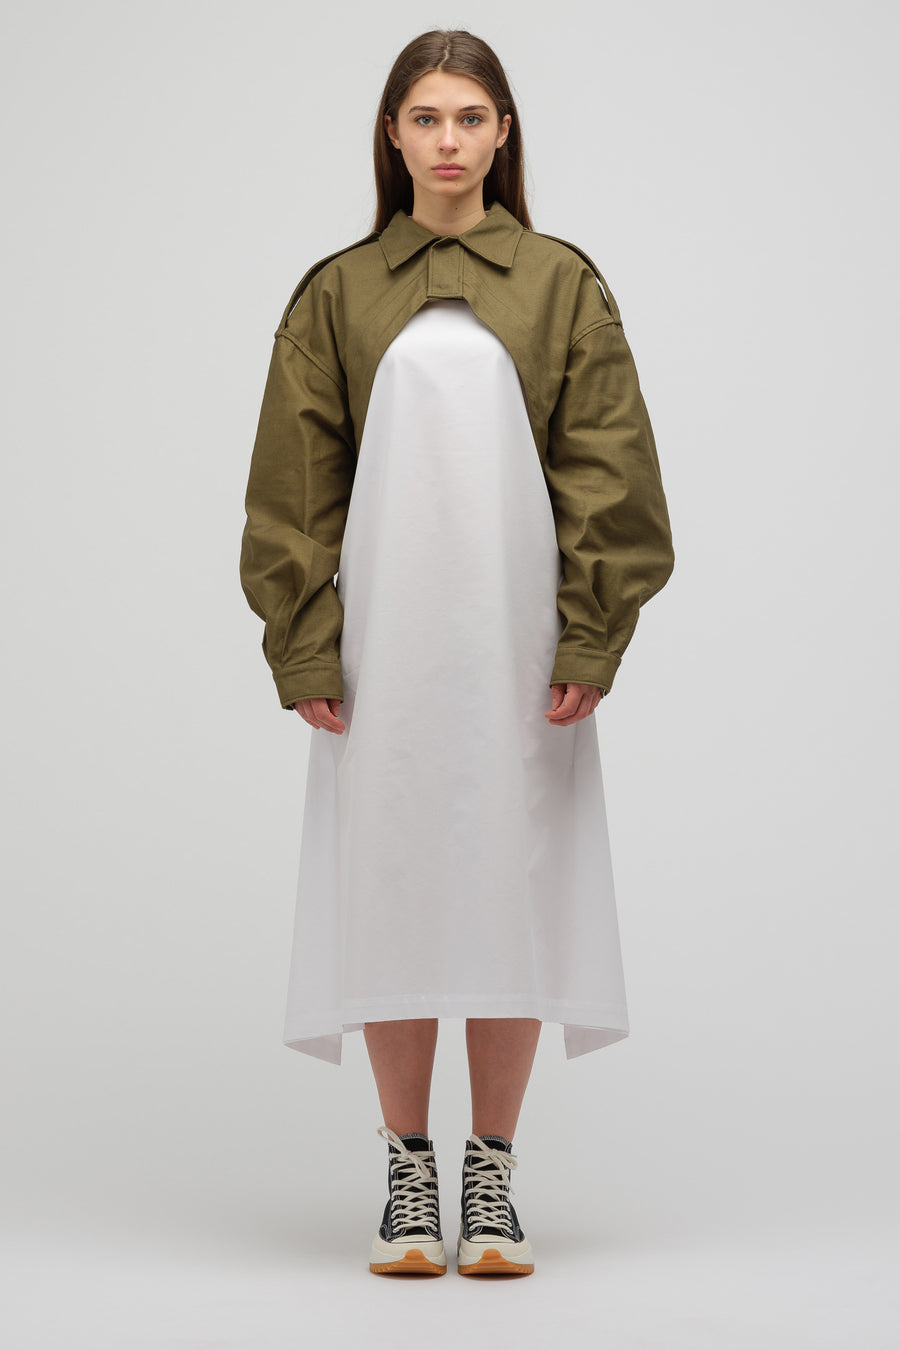 HYKE Woven Cutout Field Jacket in Olive Drab - Notre